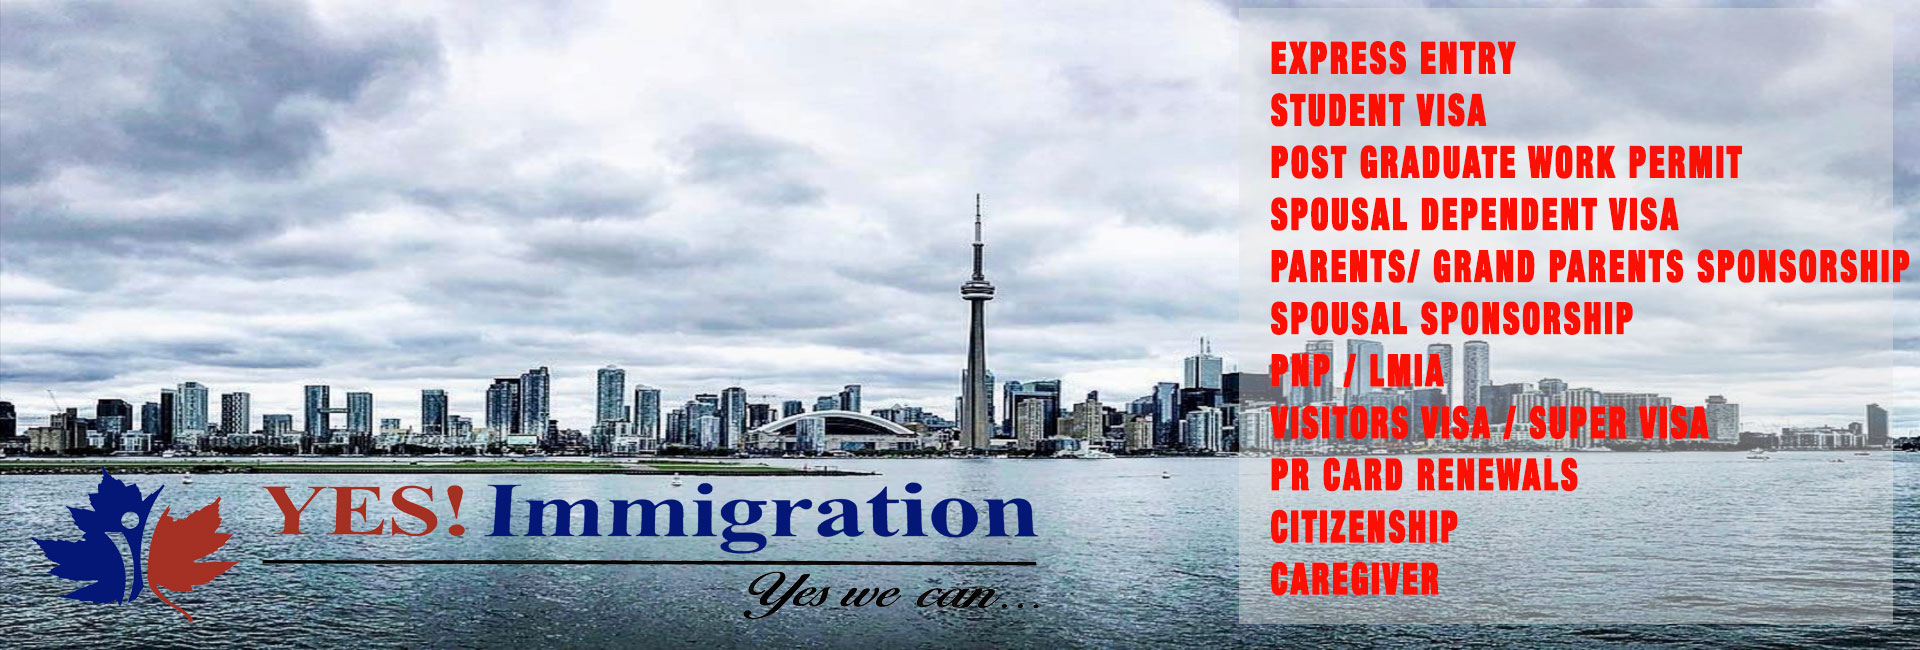 Yes Immigration